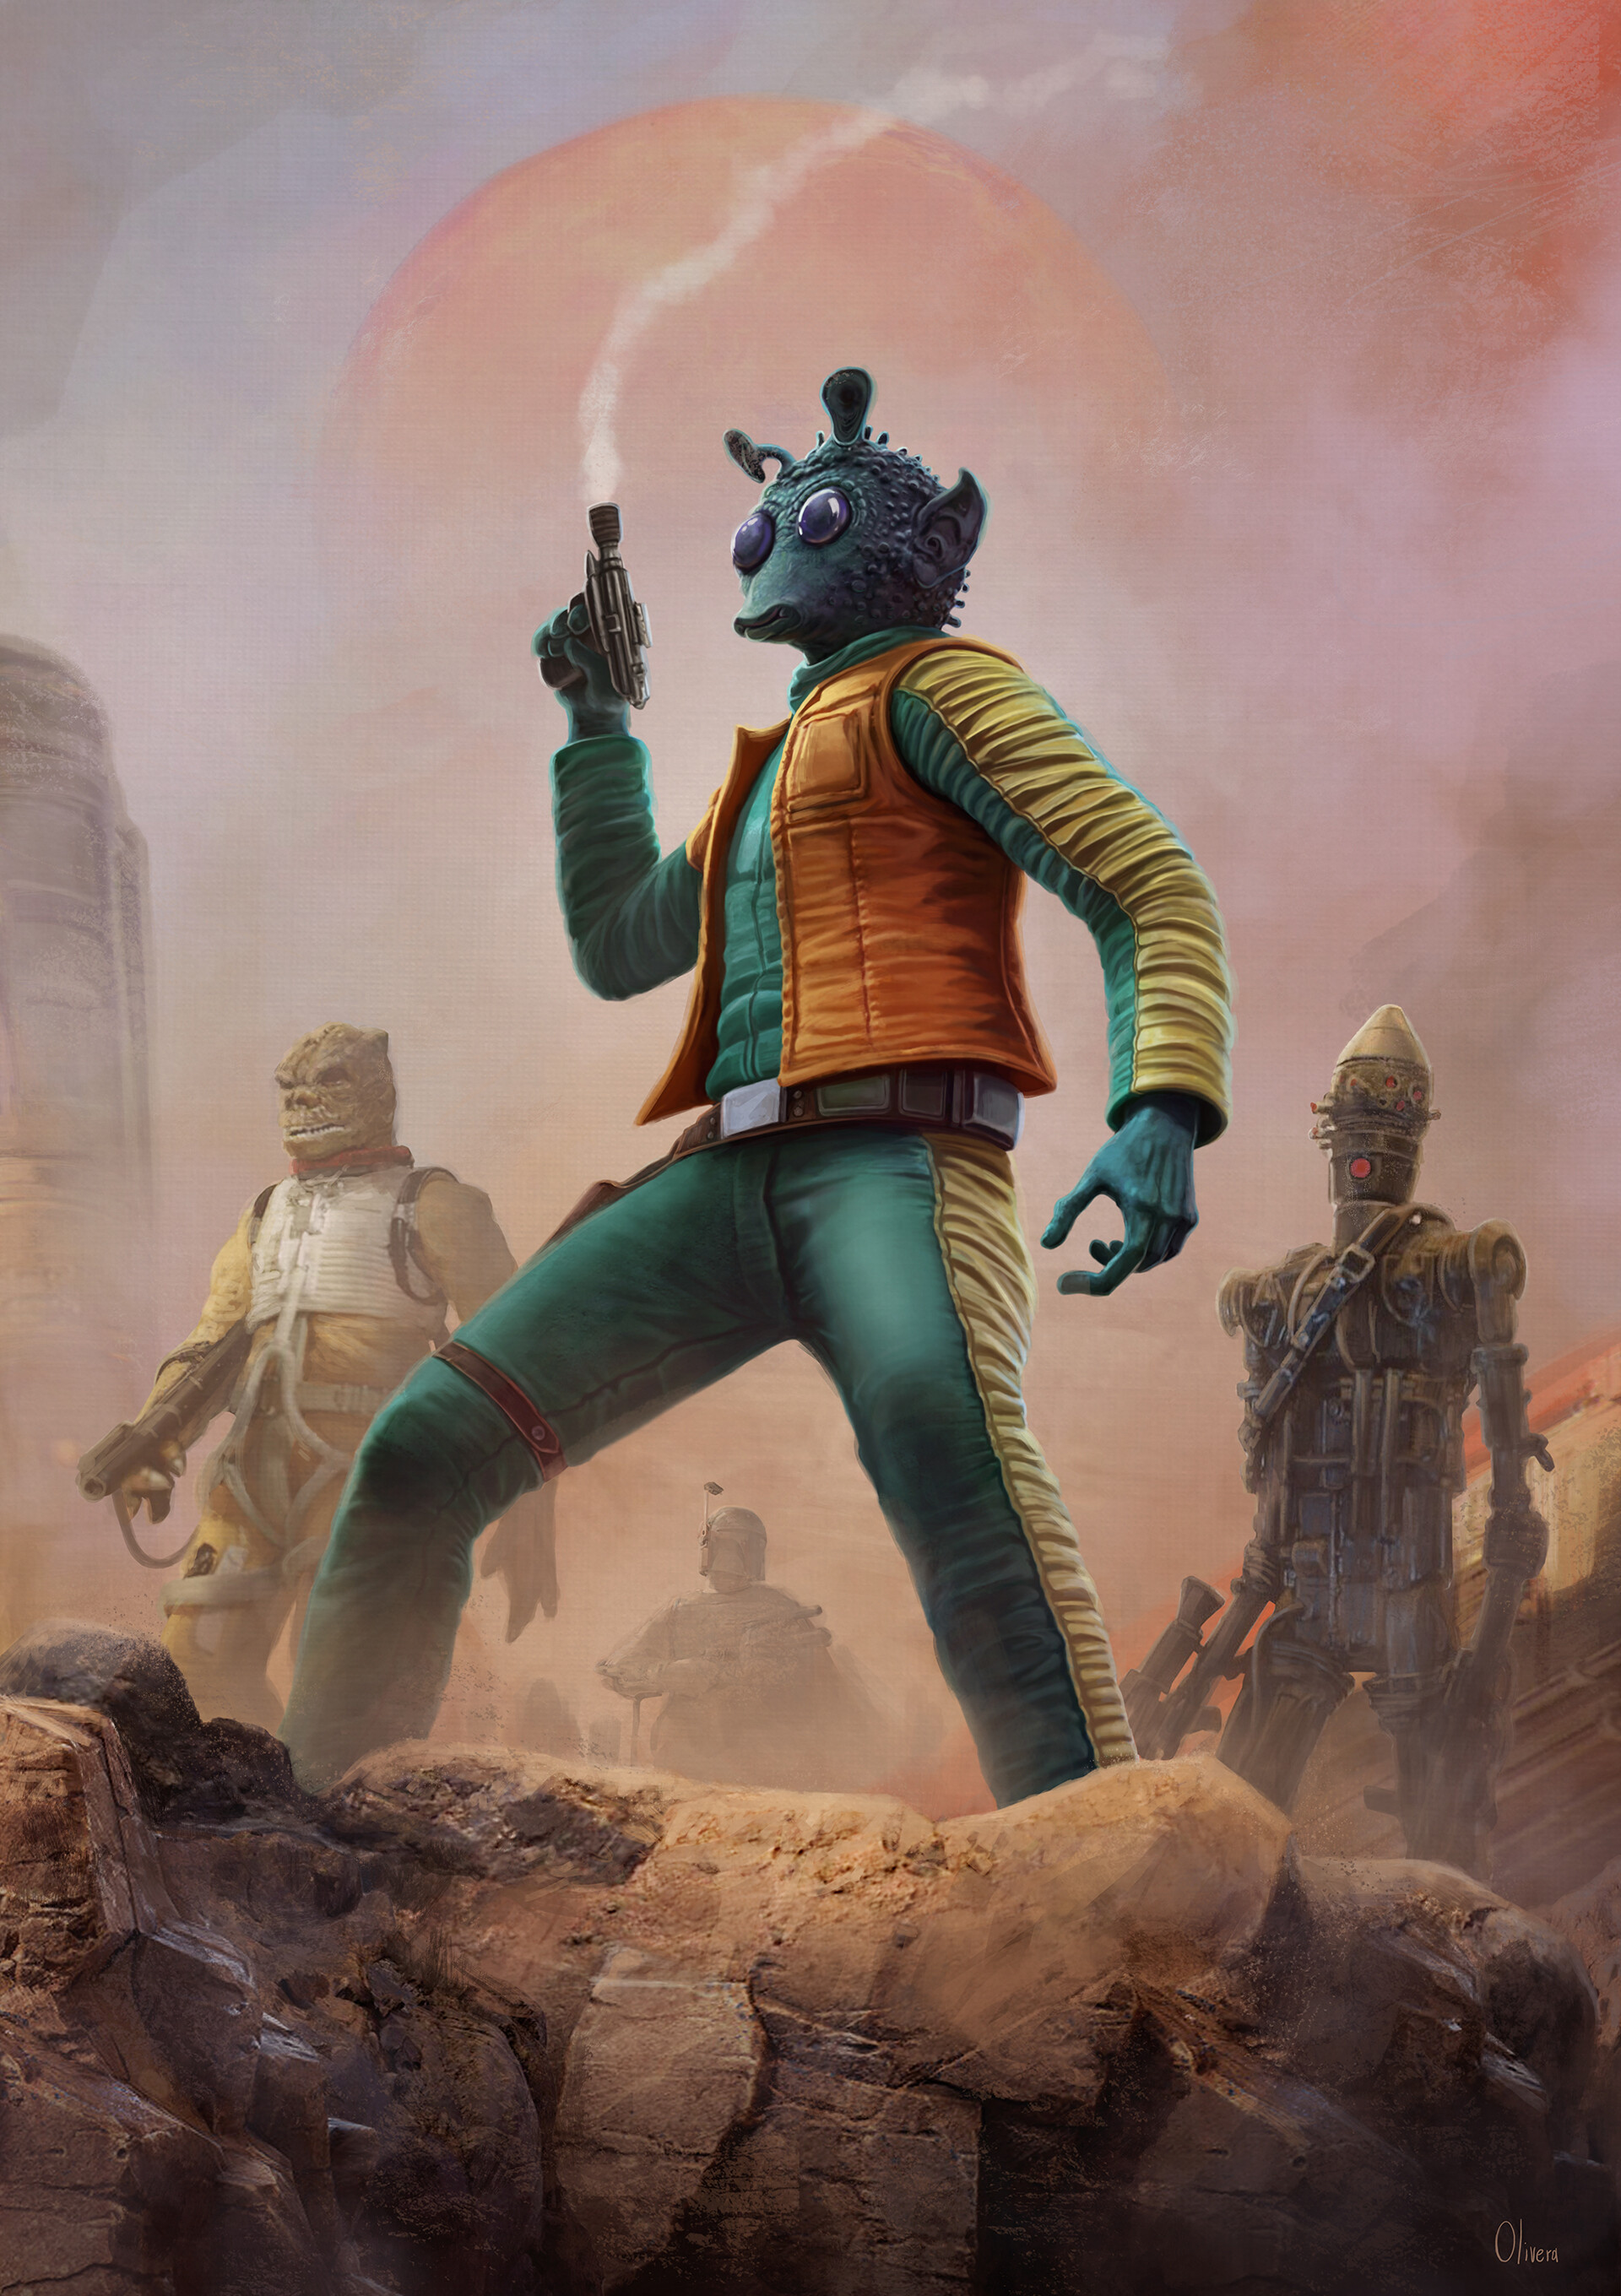 Pablo olivera greedo illustration v22 final 16 baja